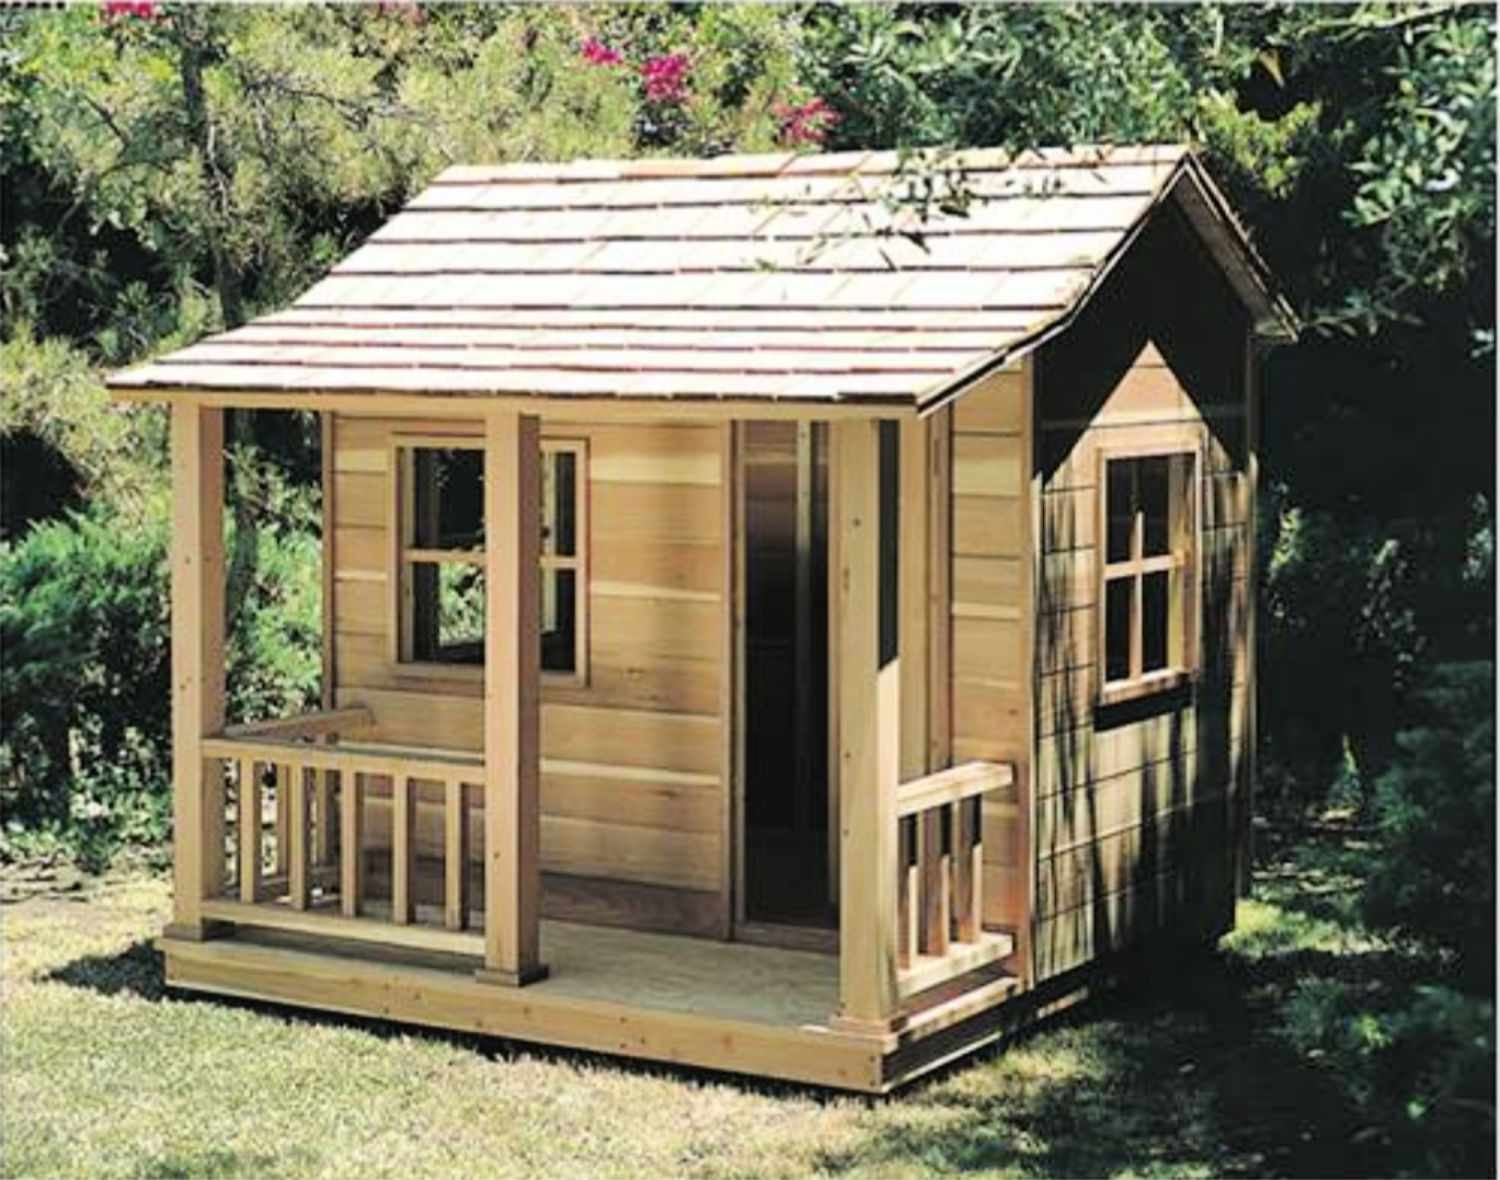 Tremendous 16 Free Backyard Playhouse Plans For Kids Interior Design Ideas Grebswwsoteloinfo